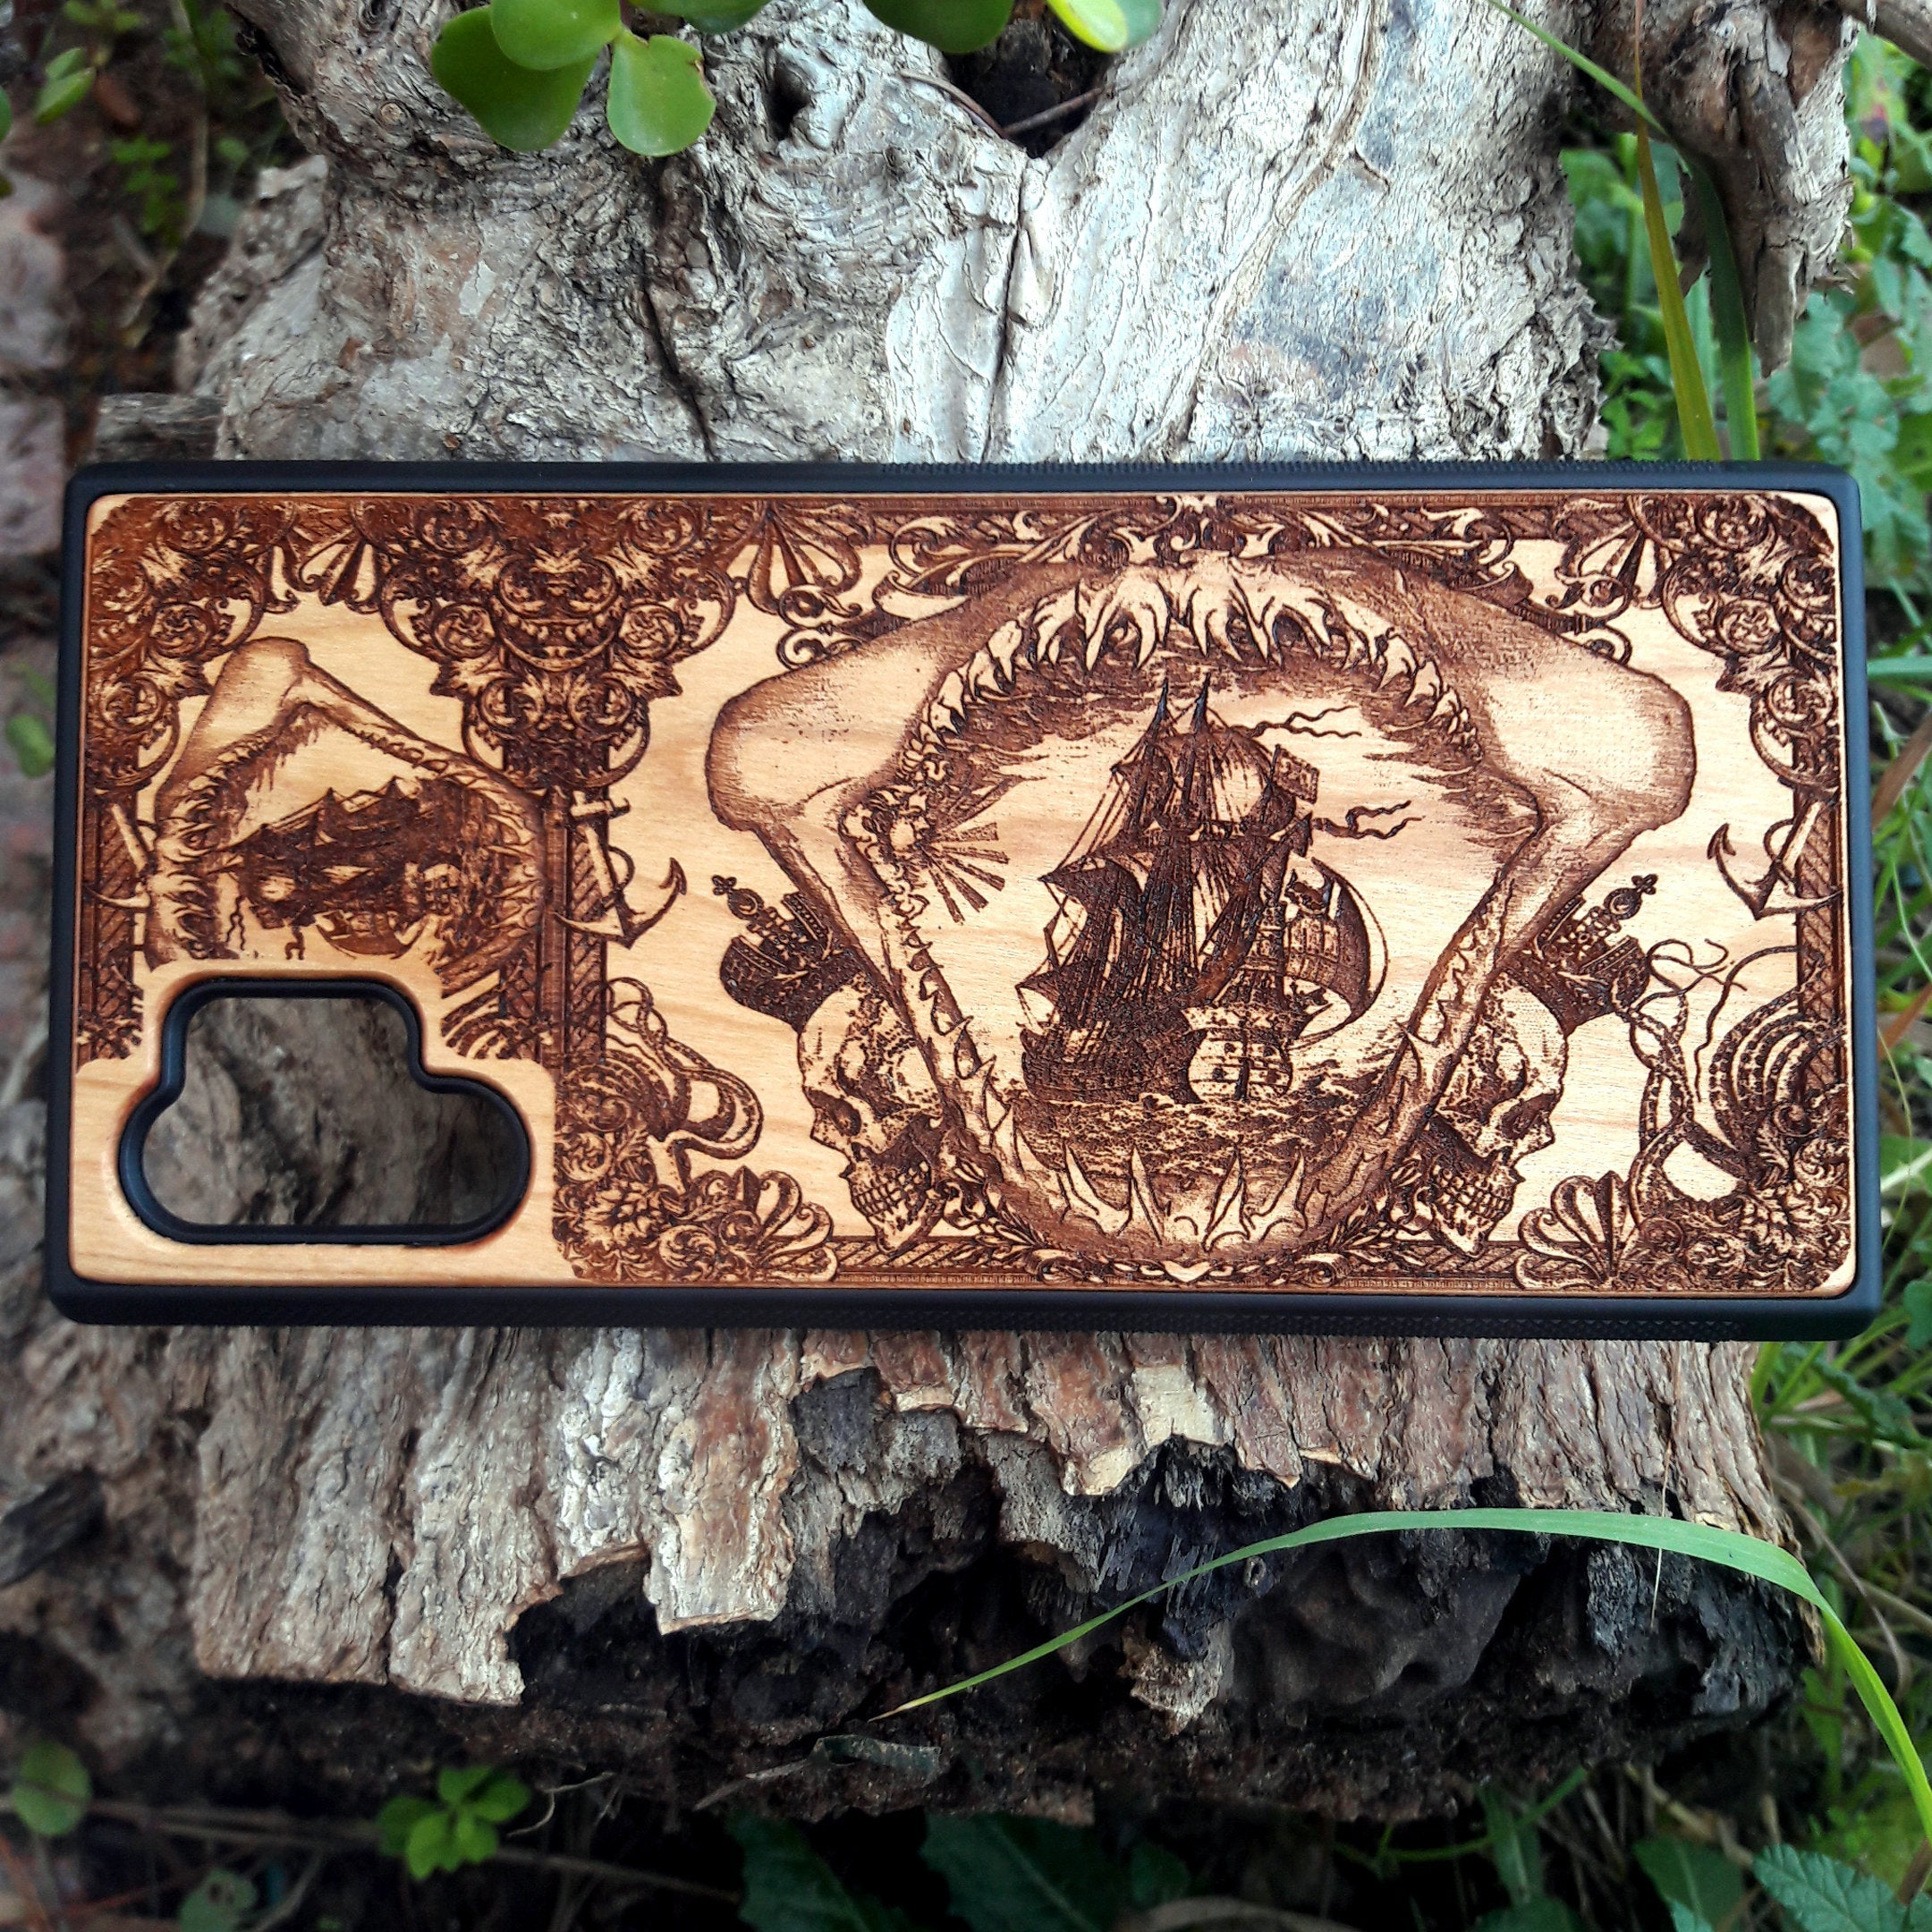 Phone Case iPhone 11 Pro Max Wood, Galaxy S20 Ultra S10 S9 Plus Wooden, Huawei P20 P30 Pro - Shark Jaw, Old Ship, Skulls, Pirates